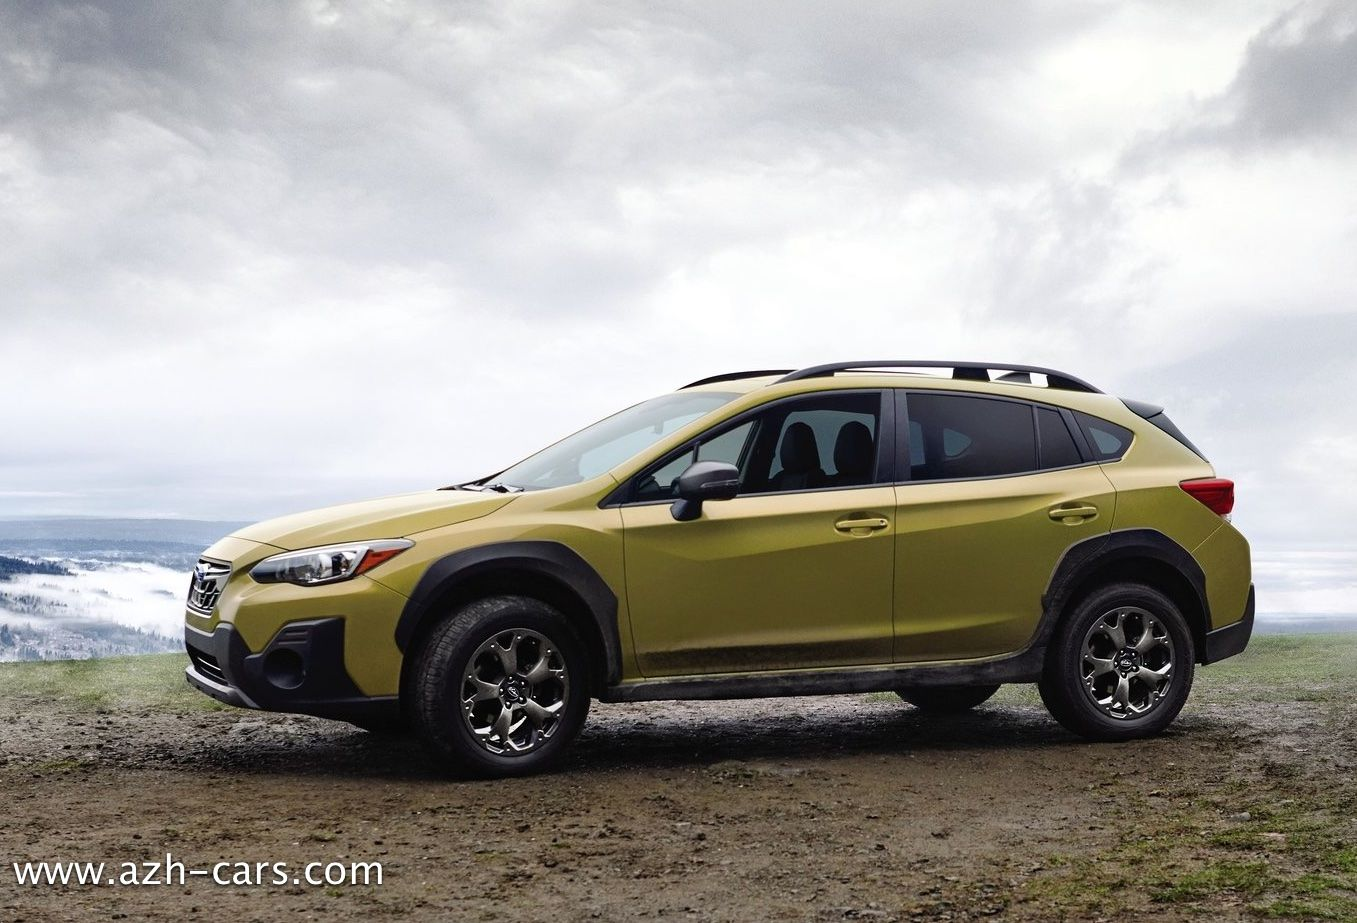 Subaru Crosstrek Review, Specs and Price 2021 in 2020